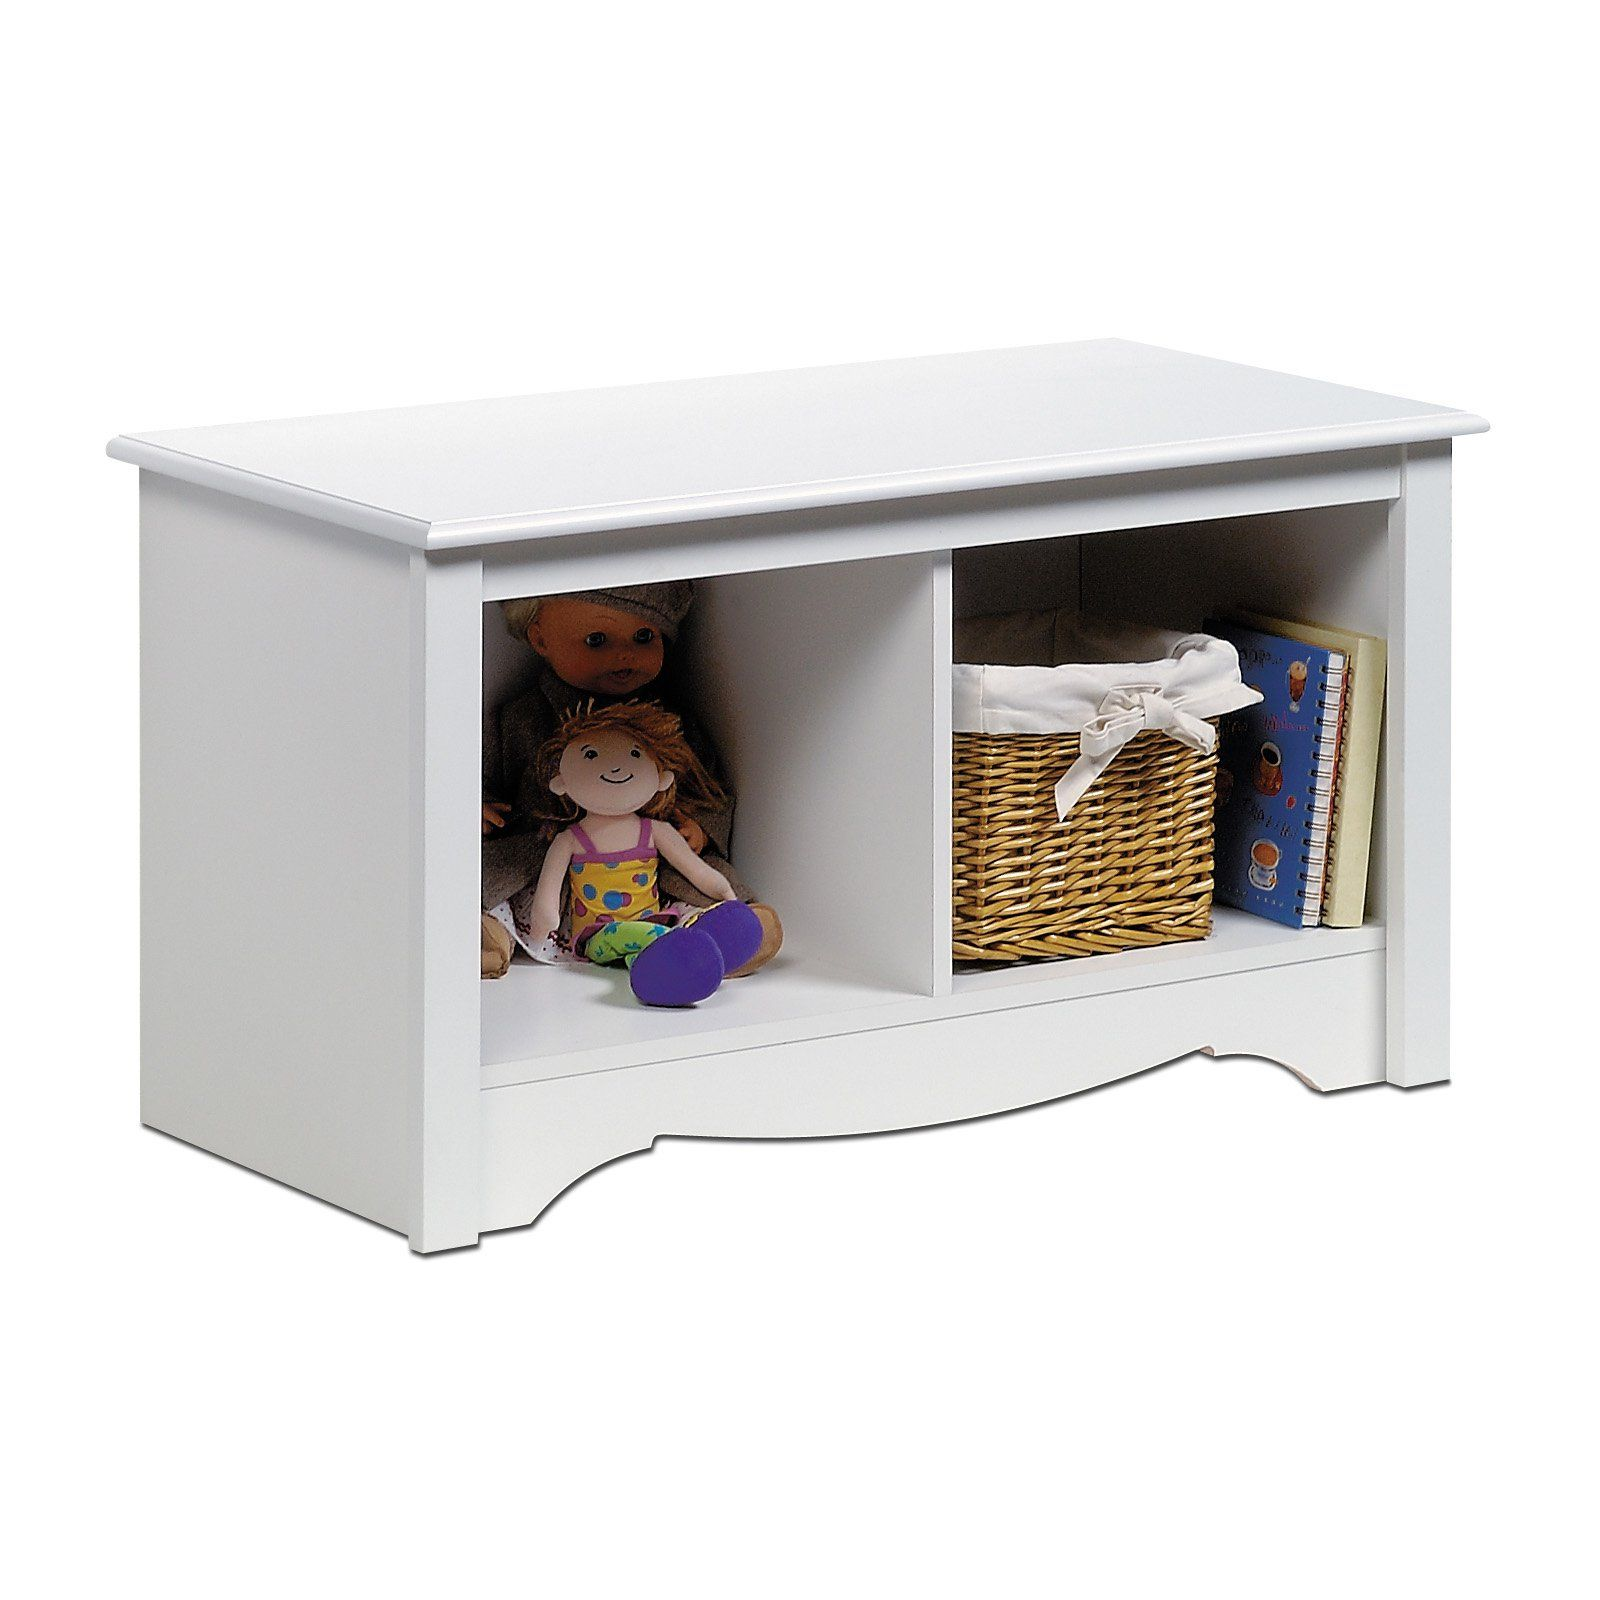 Prepac White Monterey Twin Cubbie Bench   Add Practical Storage And  Additional Seating To Any Room In Your Home With The Prepac Monterey Twin Cubbie  Bench.